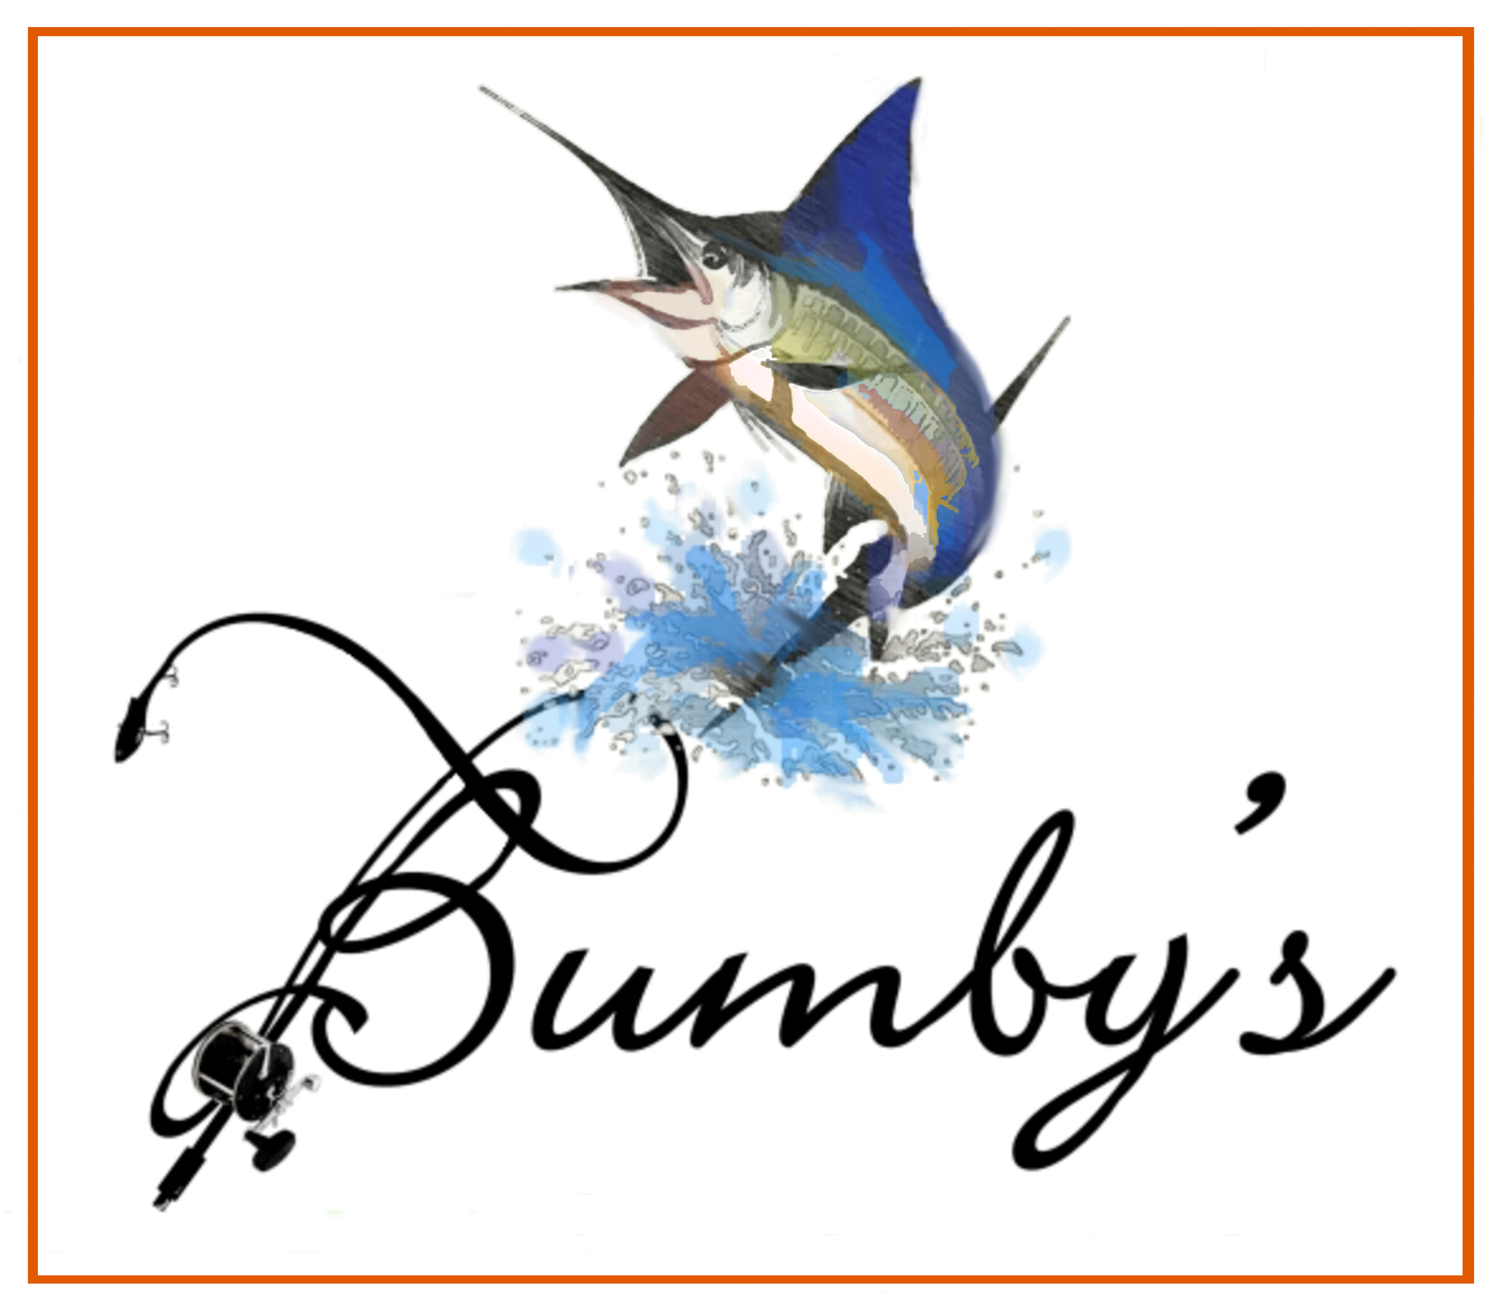 Bumby's